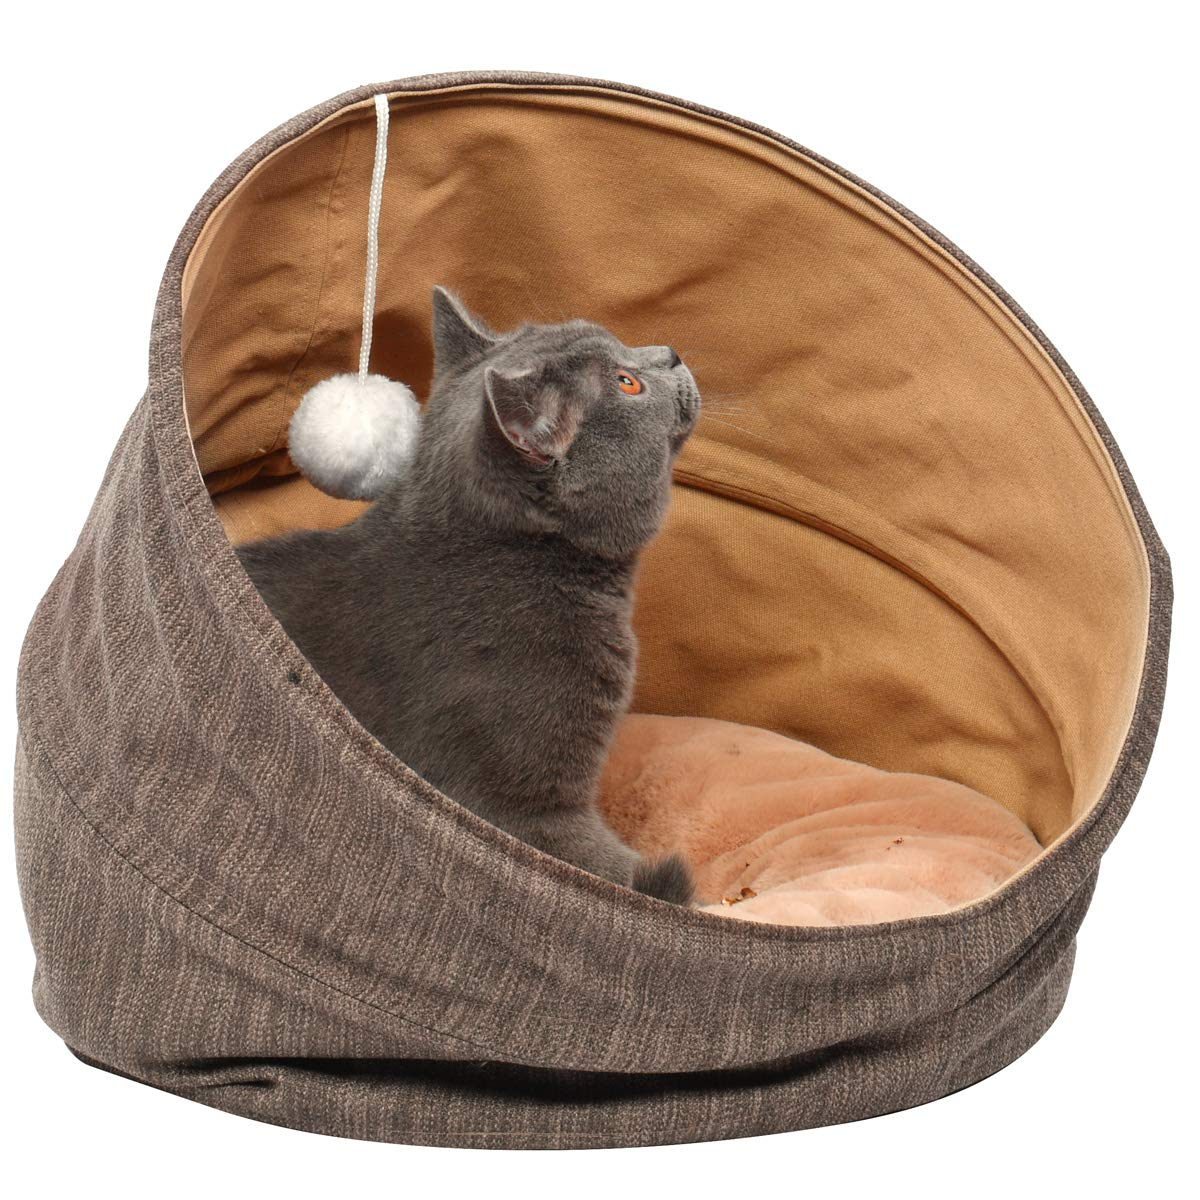 Cuddle Cave Pet Bed Tent for Cats or Small Dogs, Washable Foldable Kitten House with Luxury Shag Faux Fur Mattress & Toy Ball - Brown (18inch) by SUOCO (Image #4)